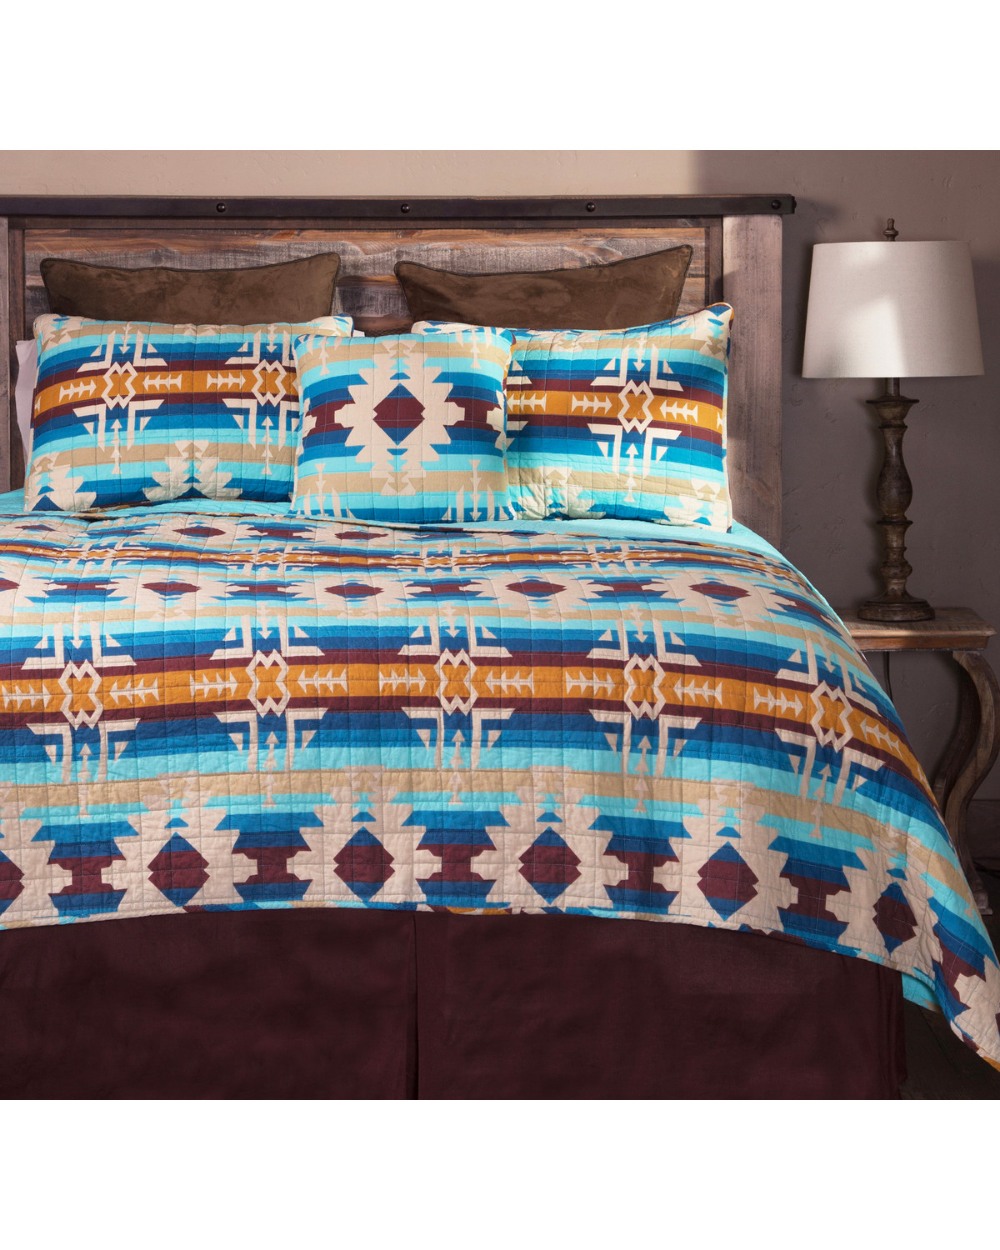 Carstens Southwest Harvest Queen Bedding 5 Piece Set